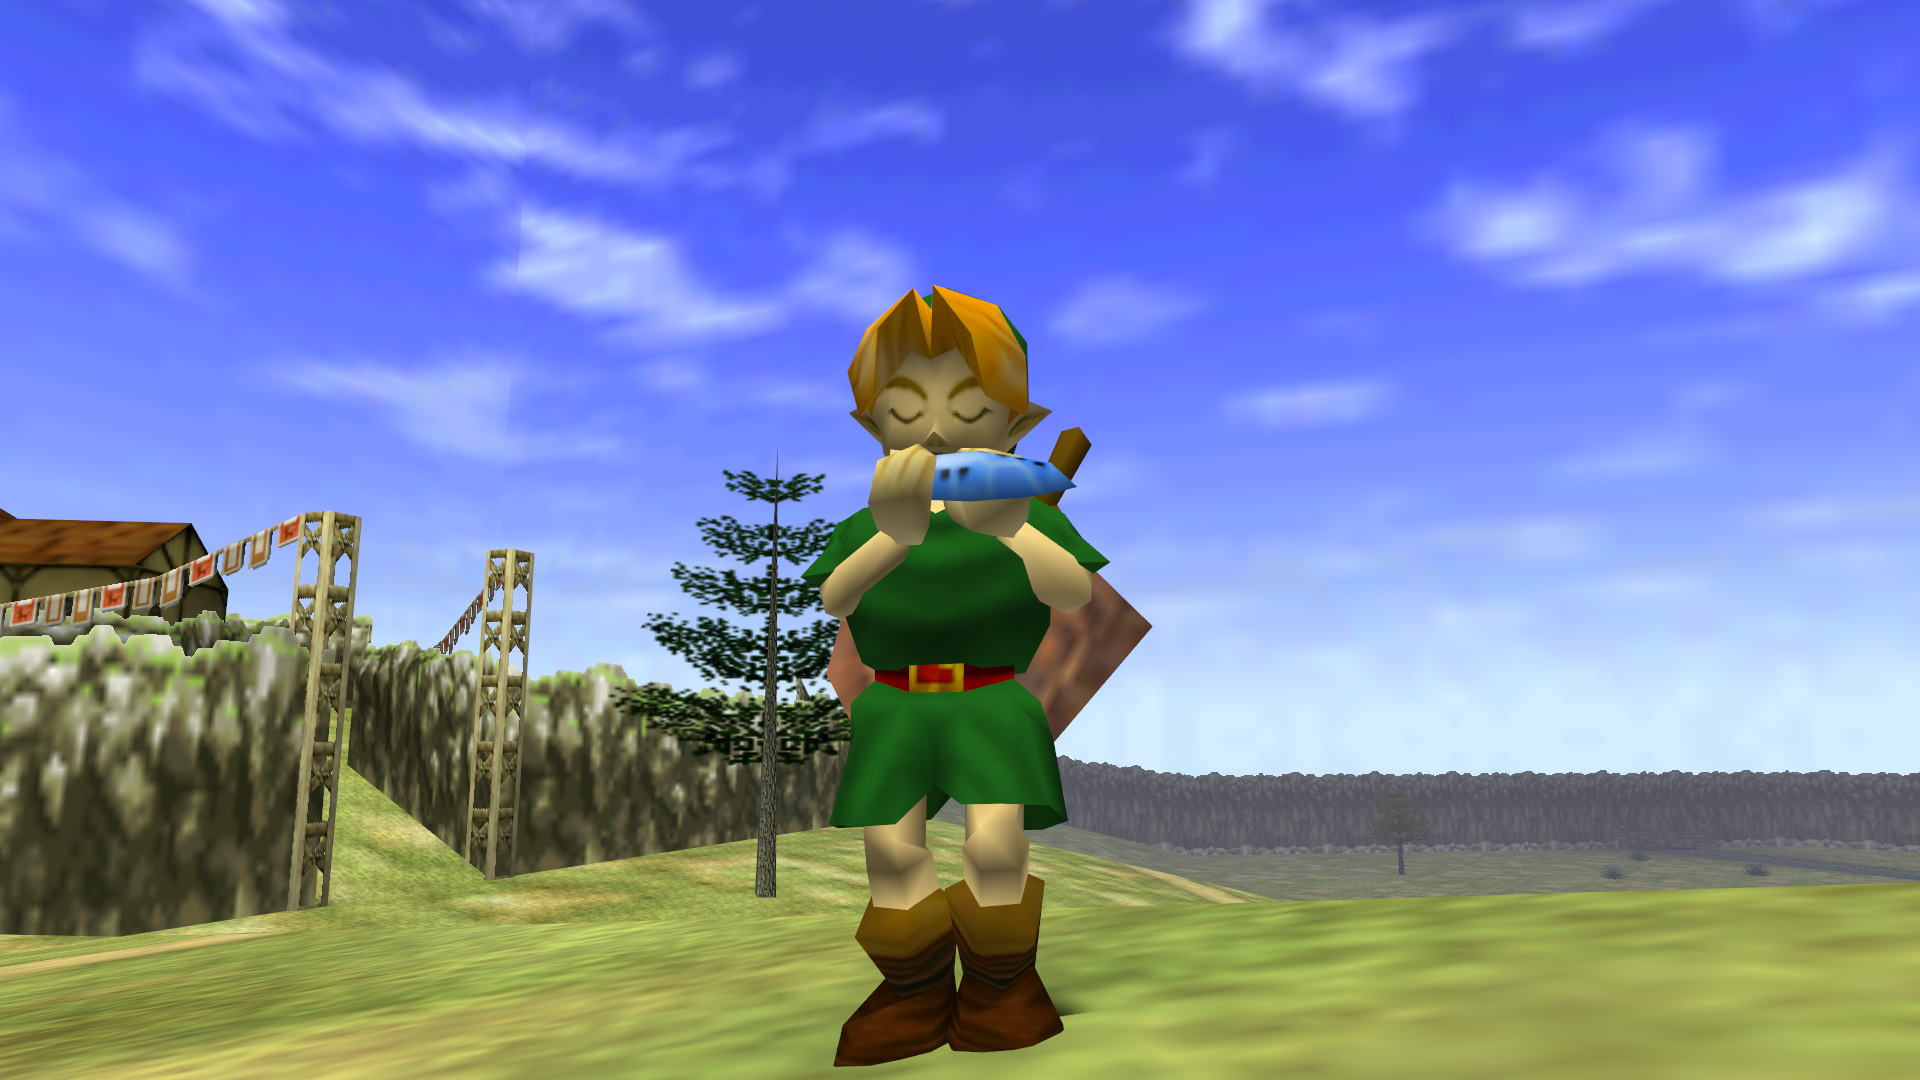 http://images3.wikia.nocookie.net/__cb20100217204214/zelda/images/7/74/Ocarina_Playing_(Ocarina_of_Time).png